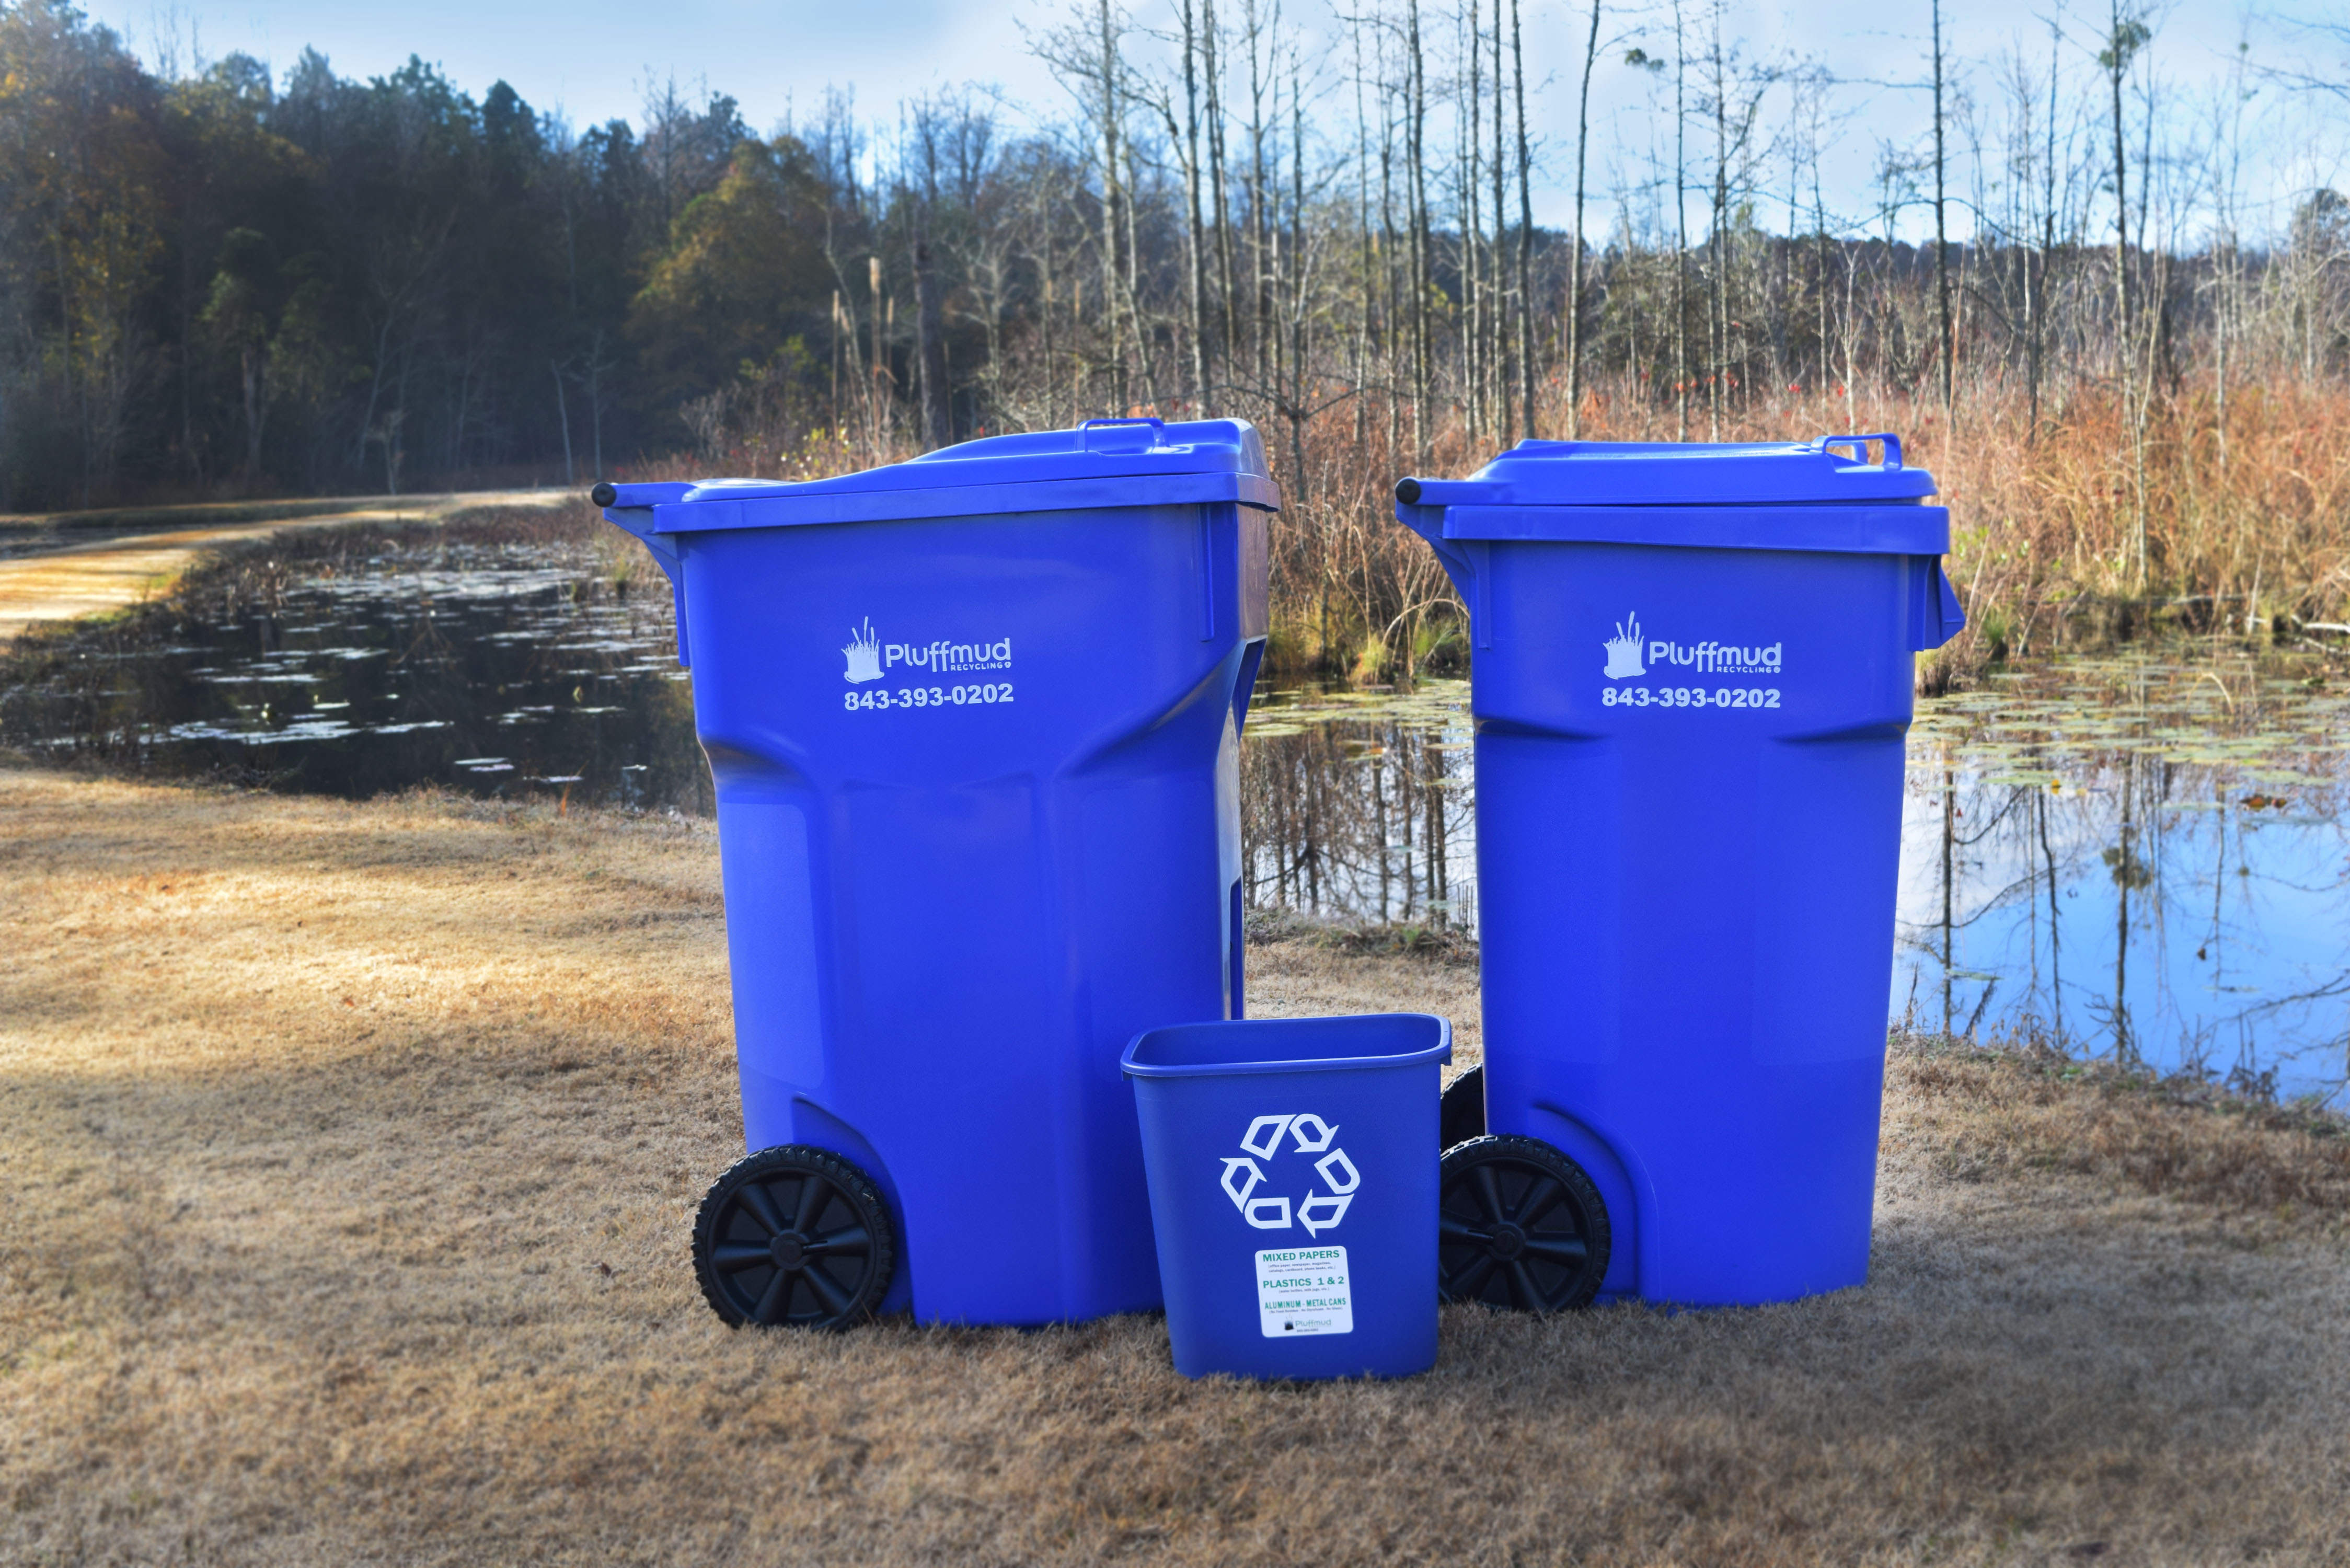 Pluffmud recycling carst